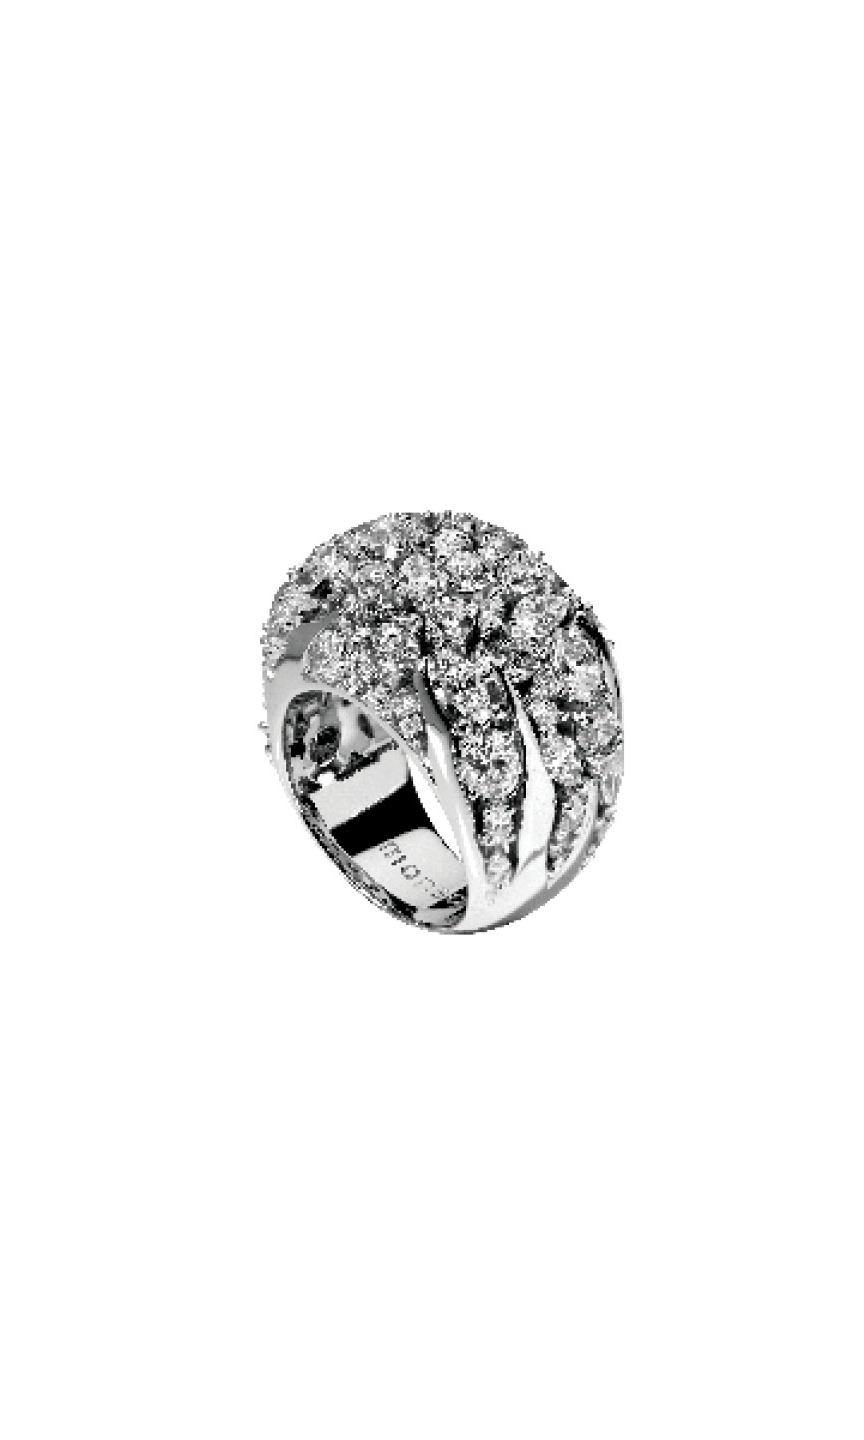 Arbre ring from Monseo Exclusive Collection